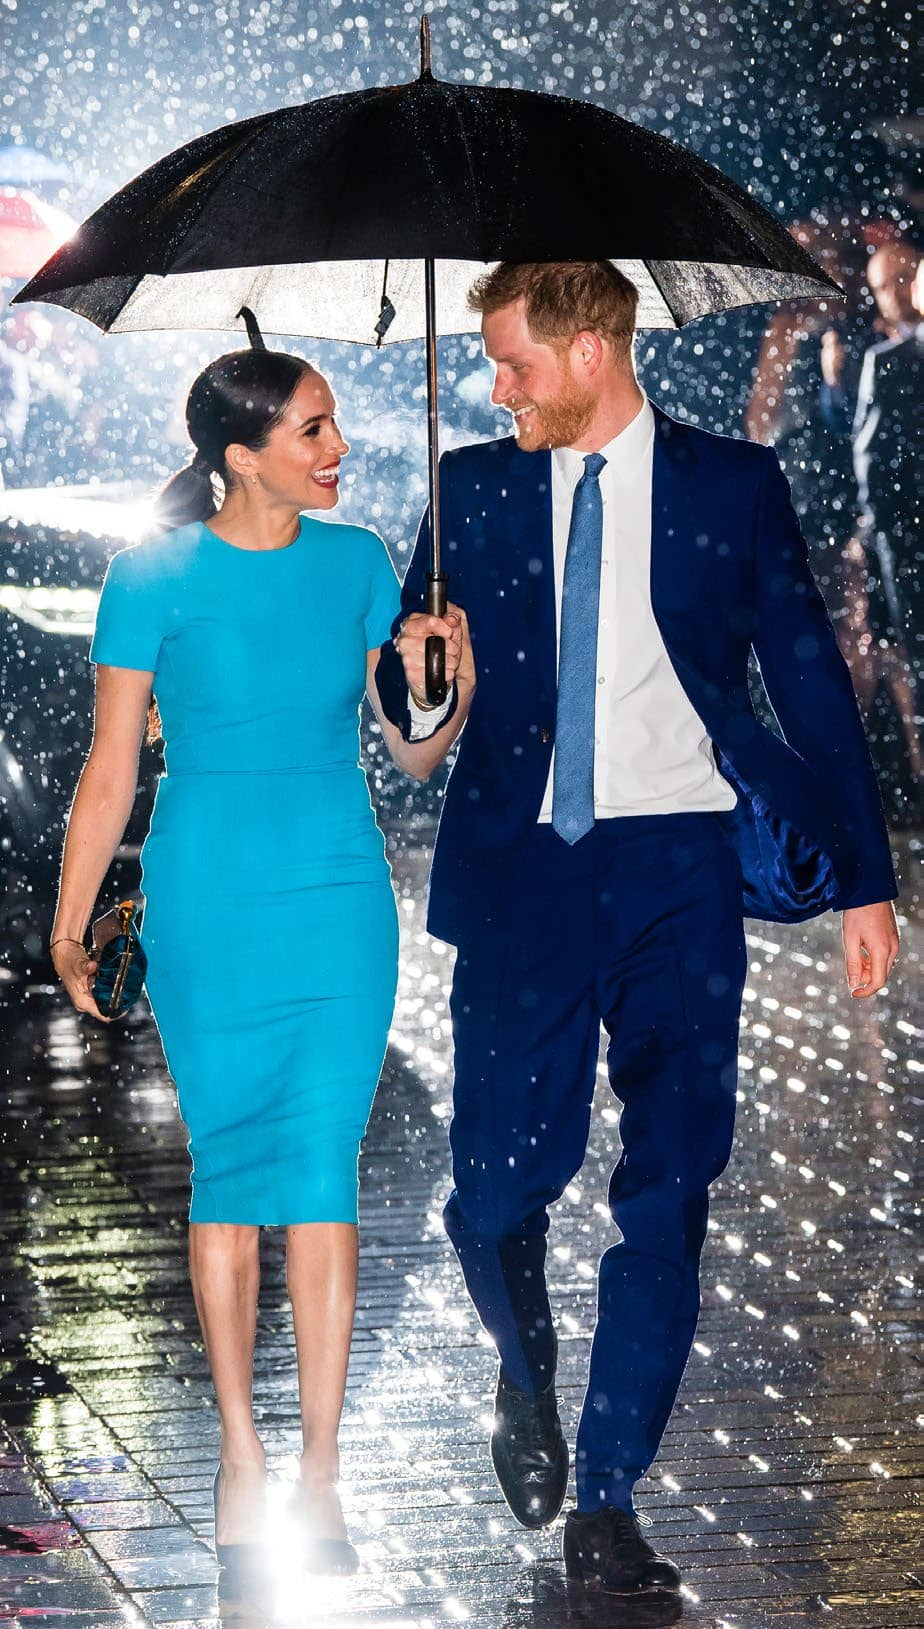 The Final Showdown Meghan & Harry's Dramatic Exit!